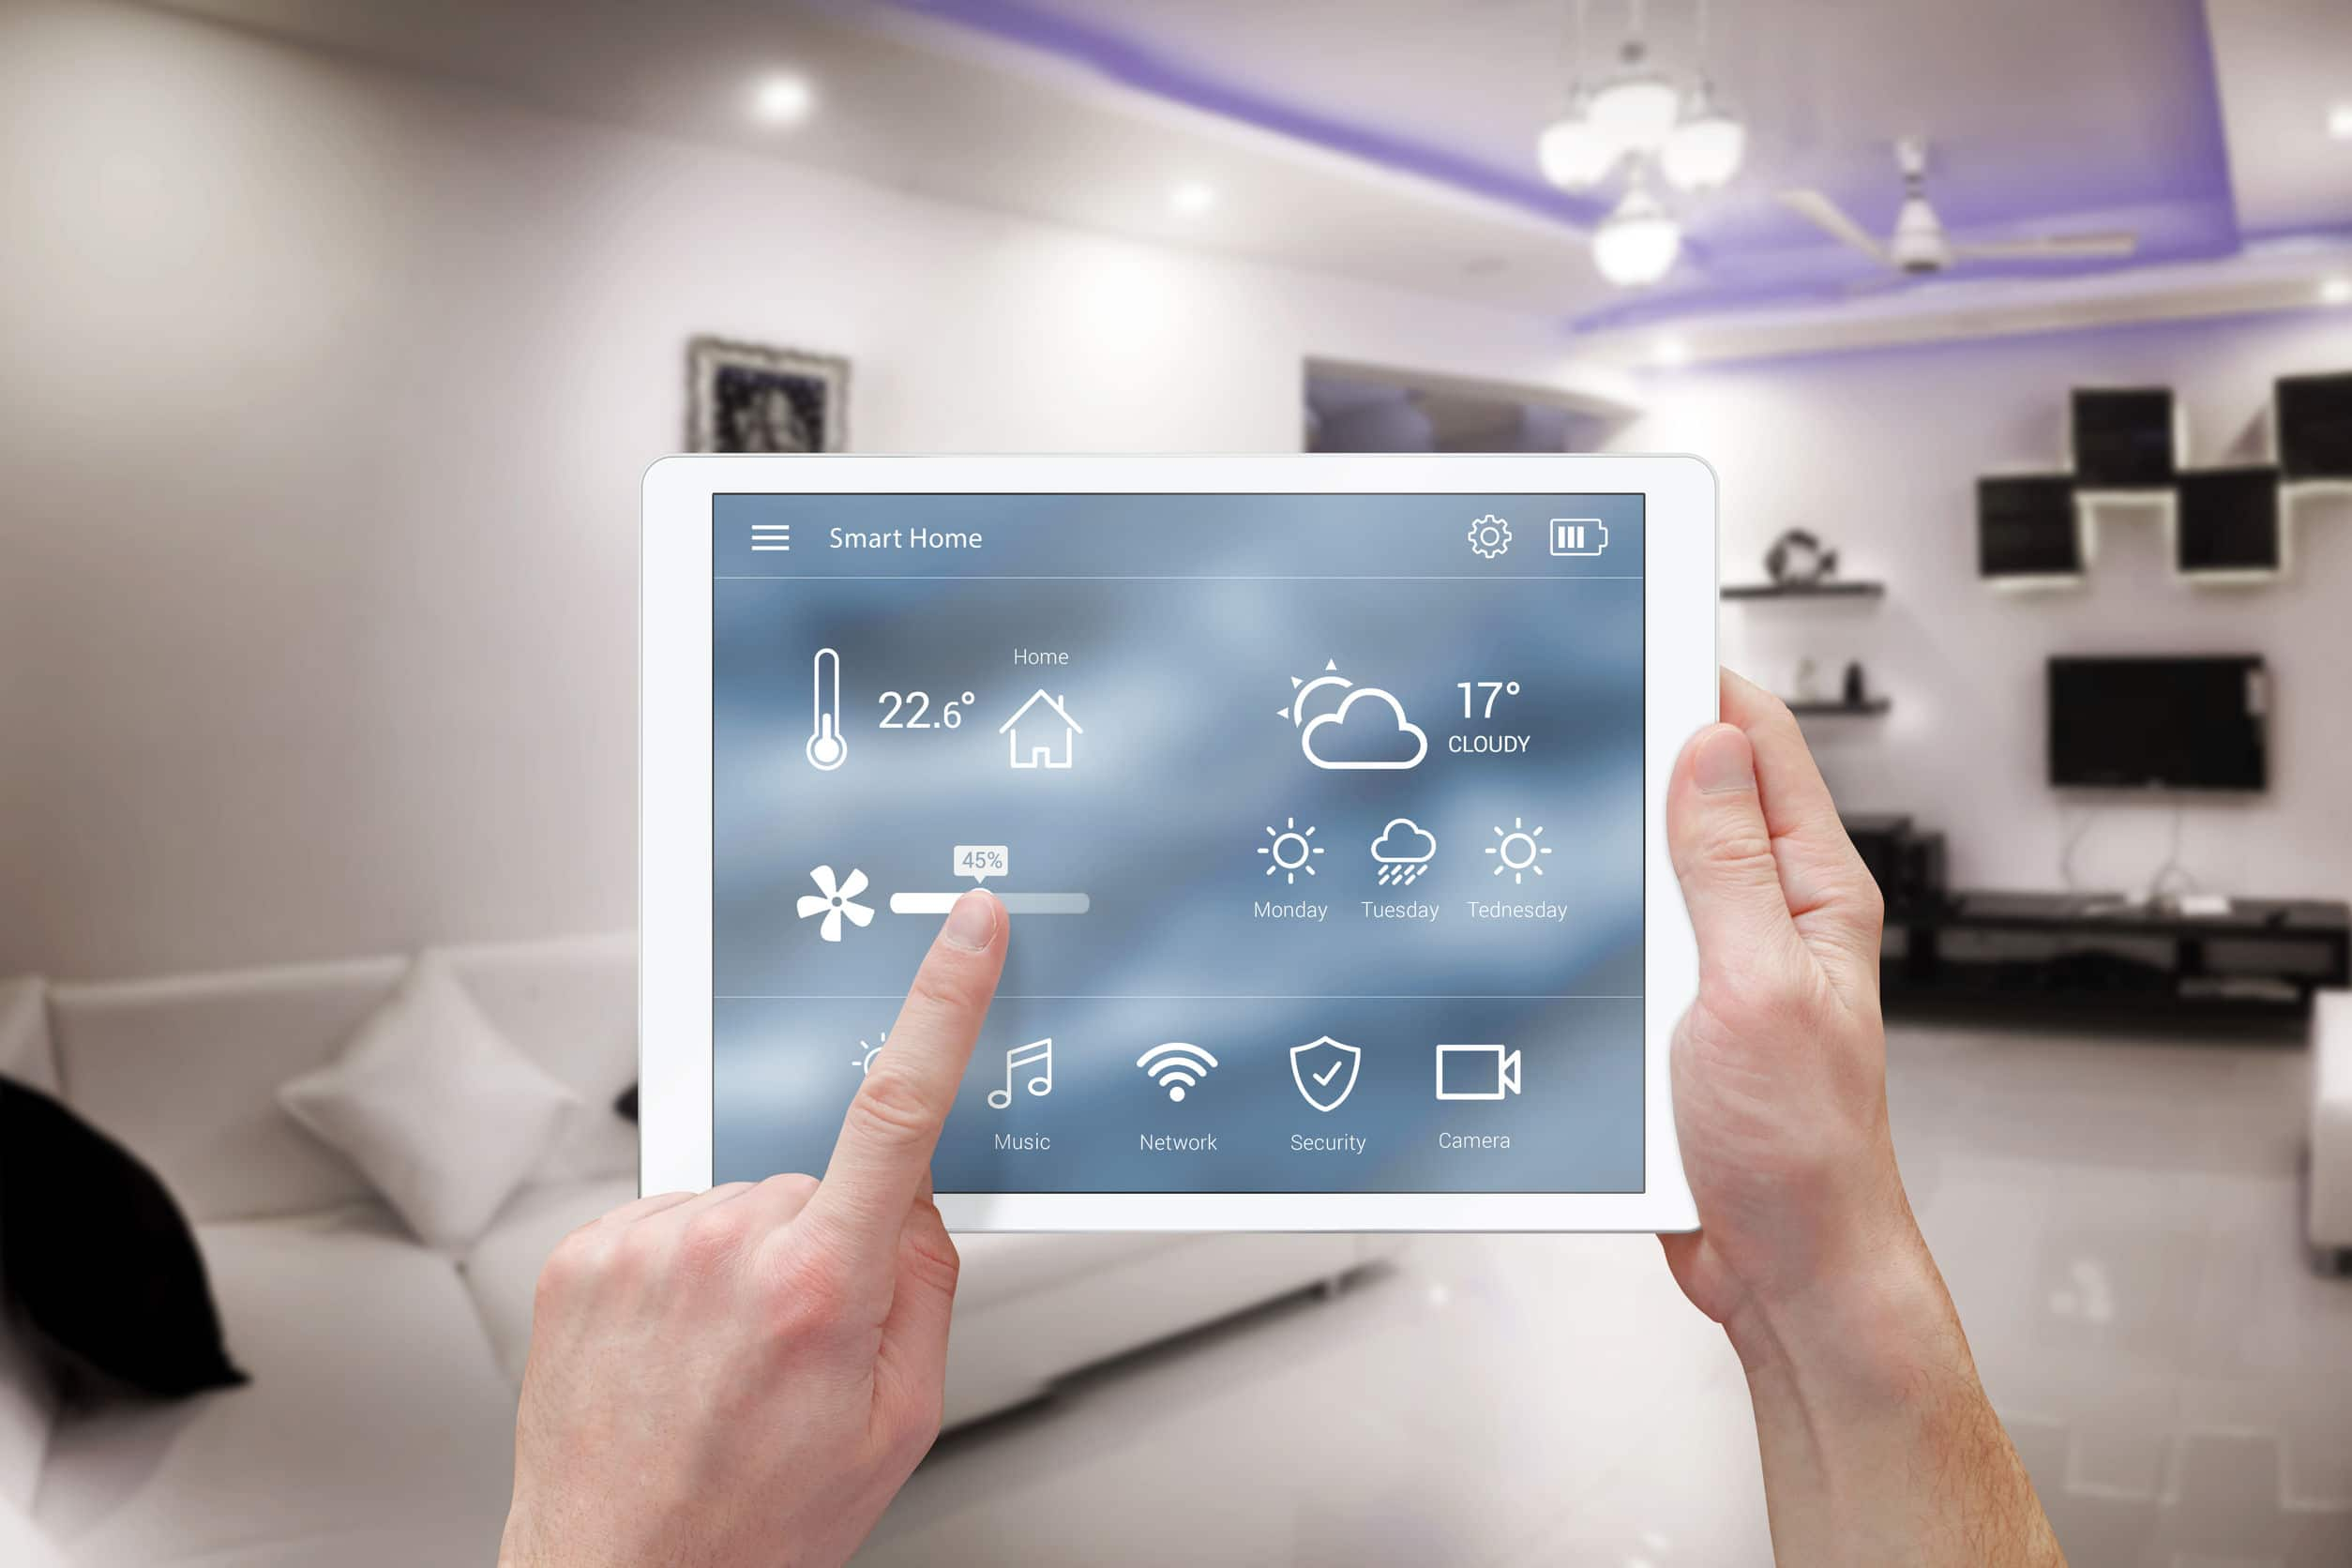 smart remote home control system app in sync with a smart thermostat to control room temperature.